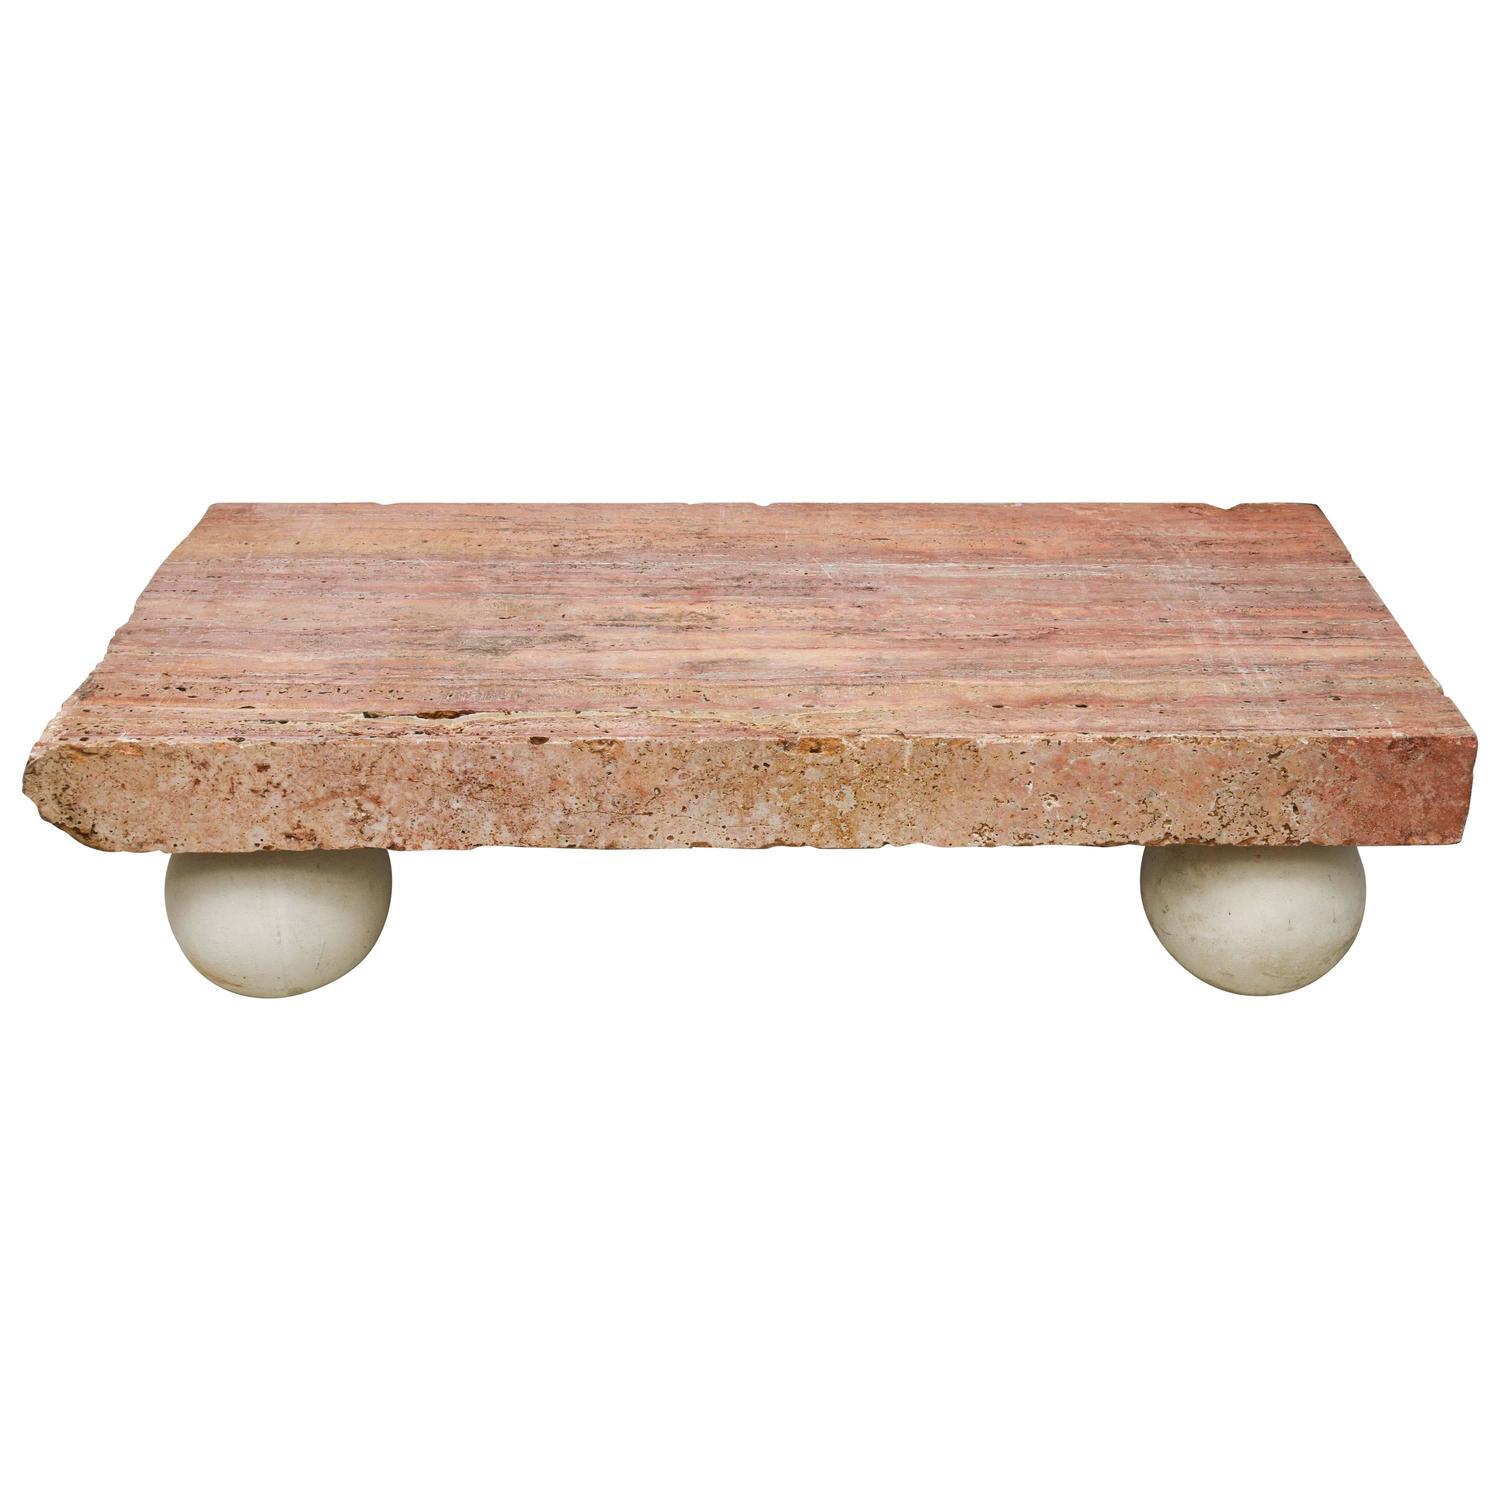 Rouge Royale Marble Slab Coffee Table For Sale at 1stdibs